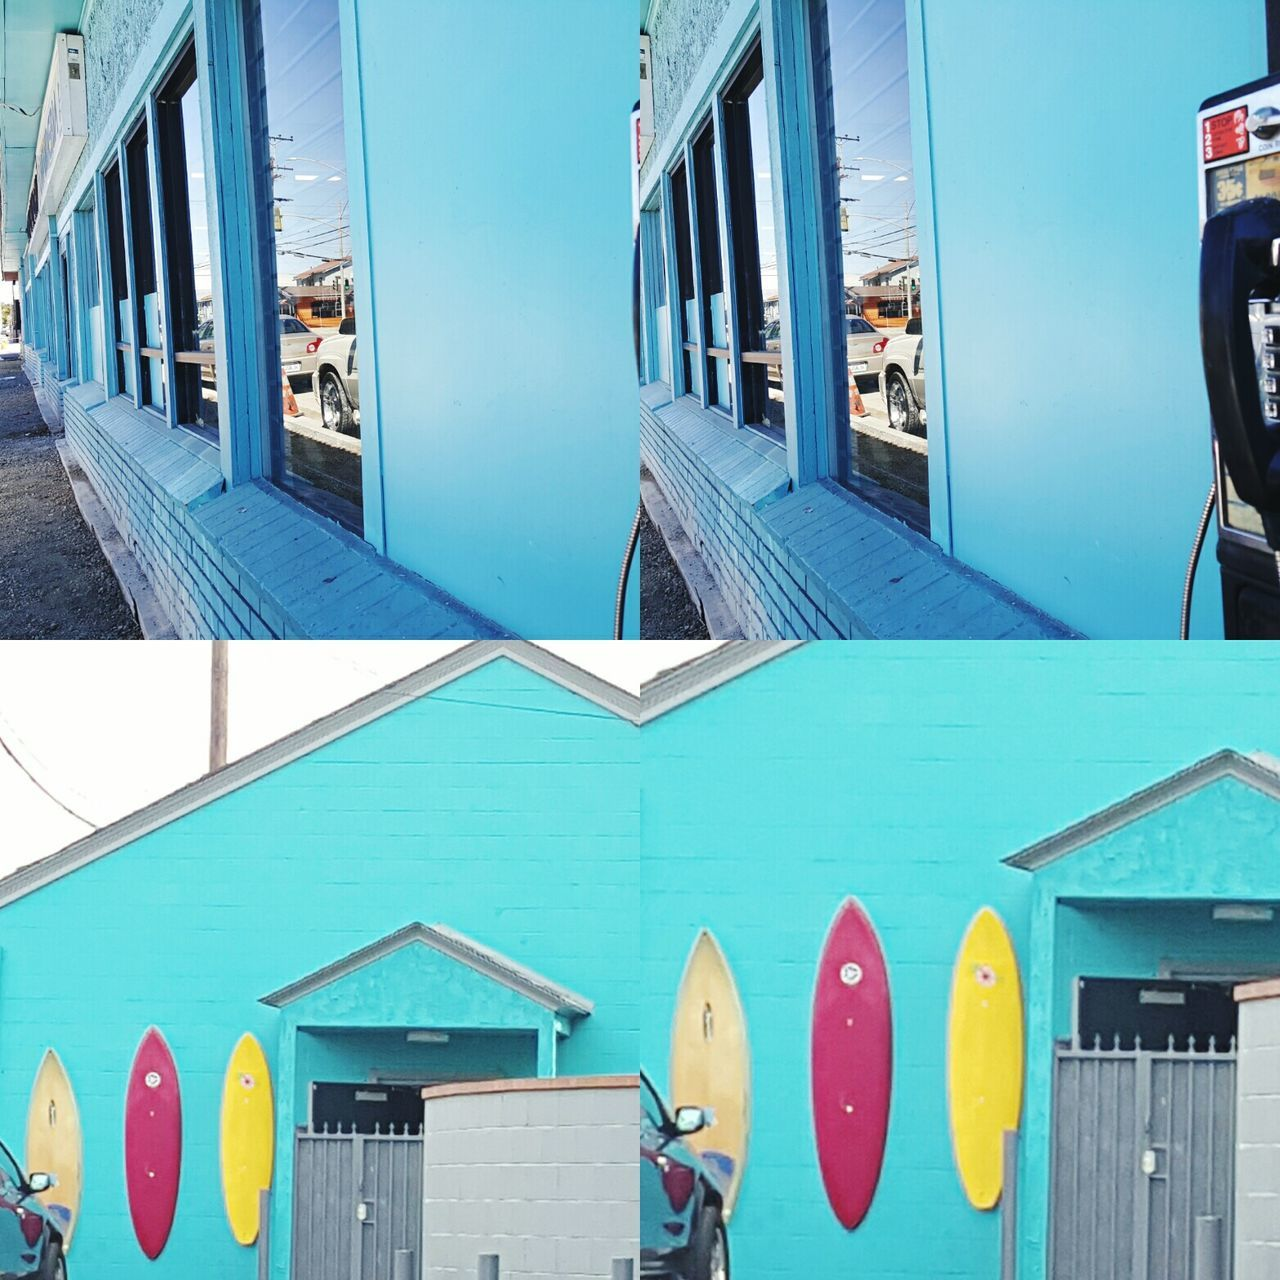 The Color Of Technology Blue Teal Surfboards Payphone Building Exterior Multi Colored Interesting Pictures Vibrant Color Full Frame Outdoors Sky Modern Geometric Shape City Life Off The Beaten Path No People Scenics Zcheezephotoz Beach Life Multiple Image Digital Darkroom Unique Perspective Colorphotography Streetphoto Live For The Story The Architect - 2017 EyeEm Awards